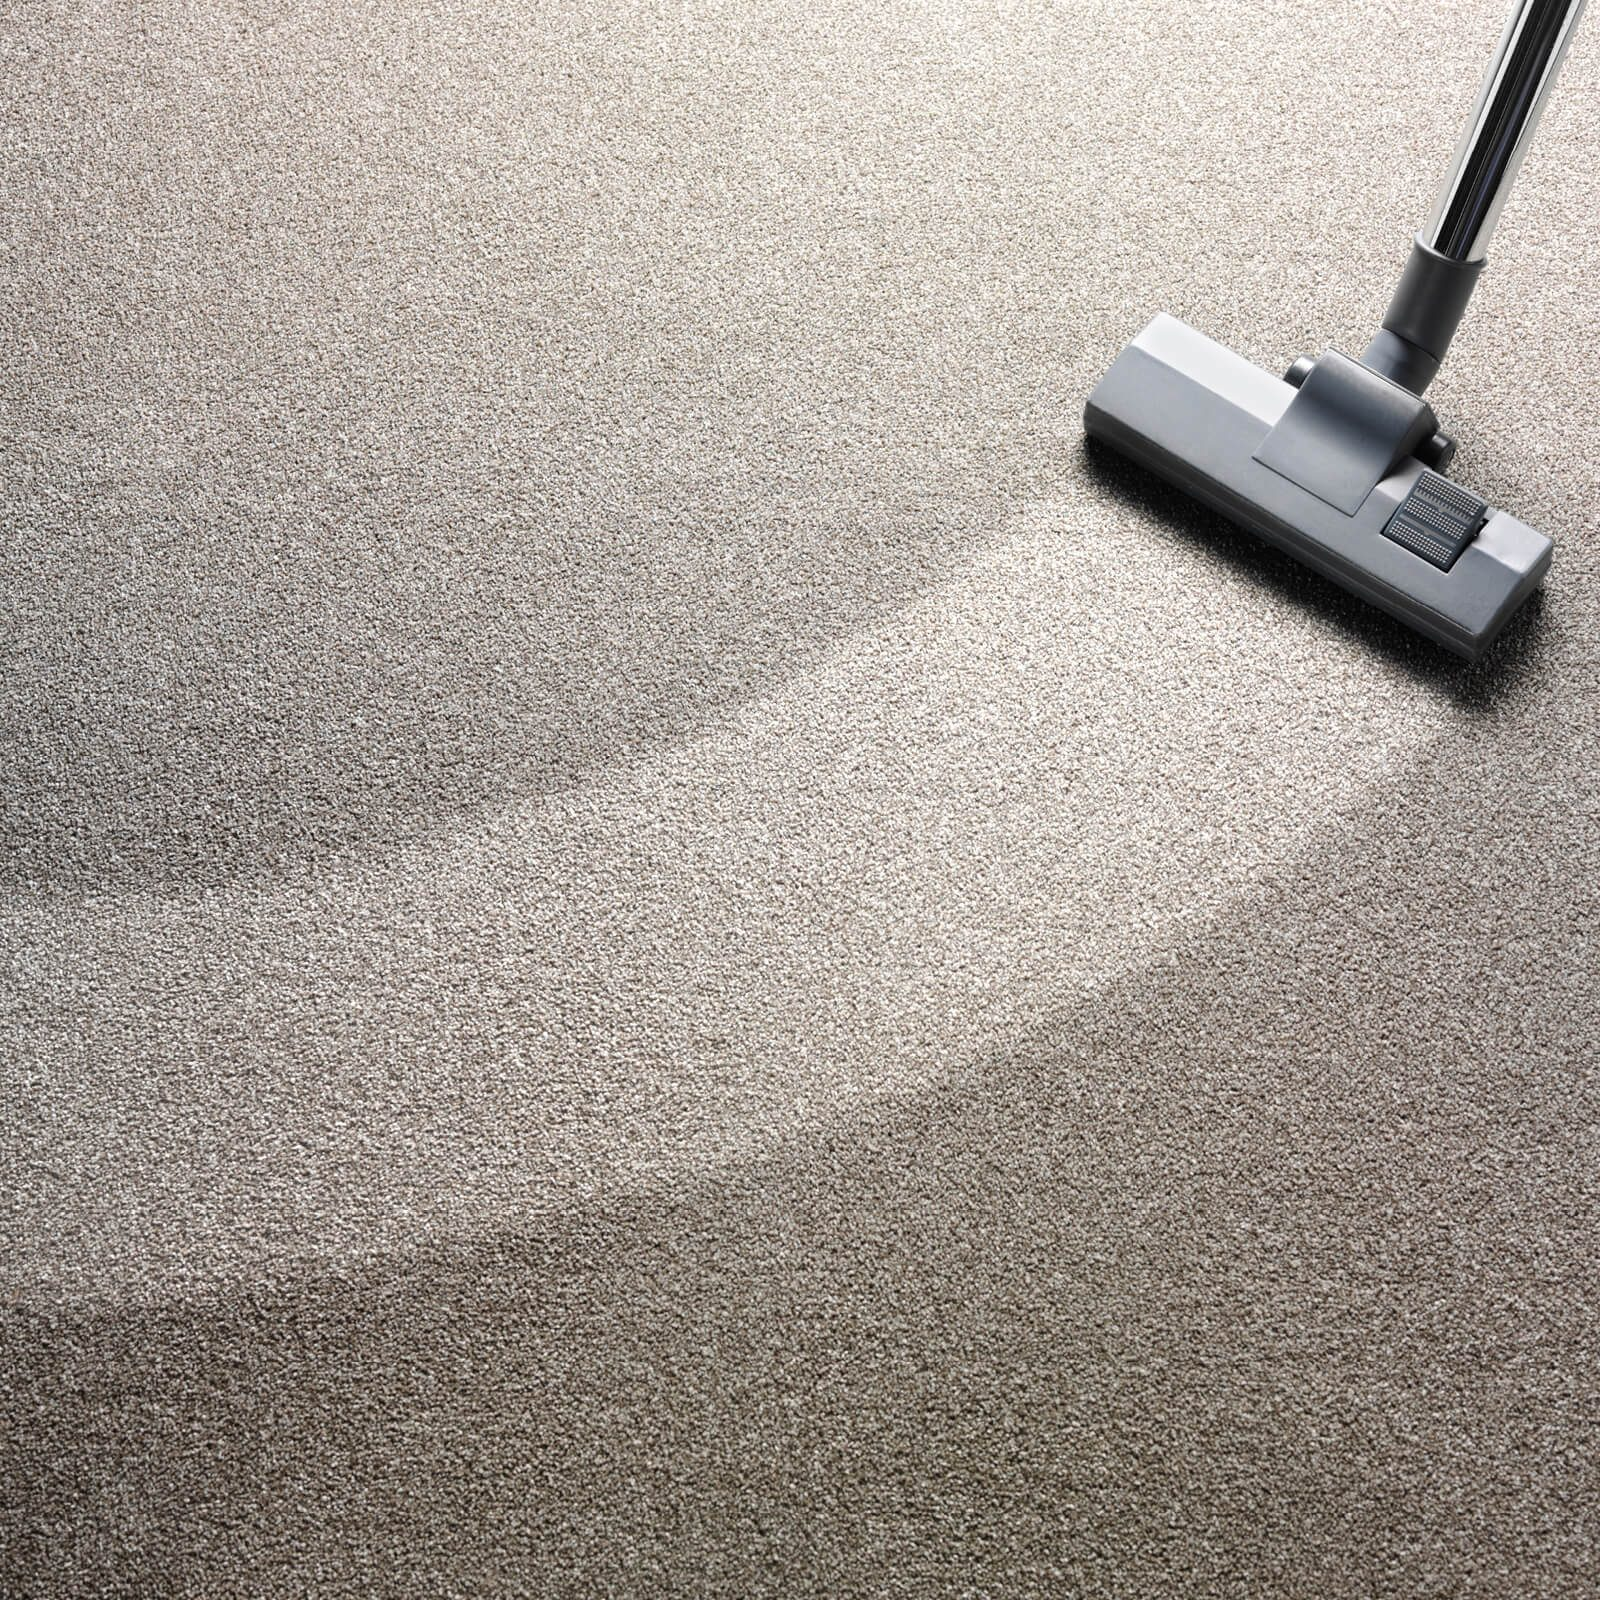 Carpet cleaning tips | Chesapeake Family Floors